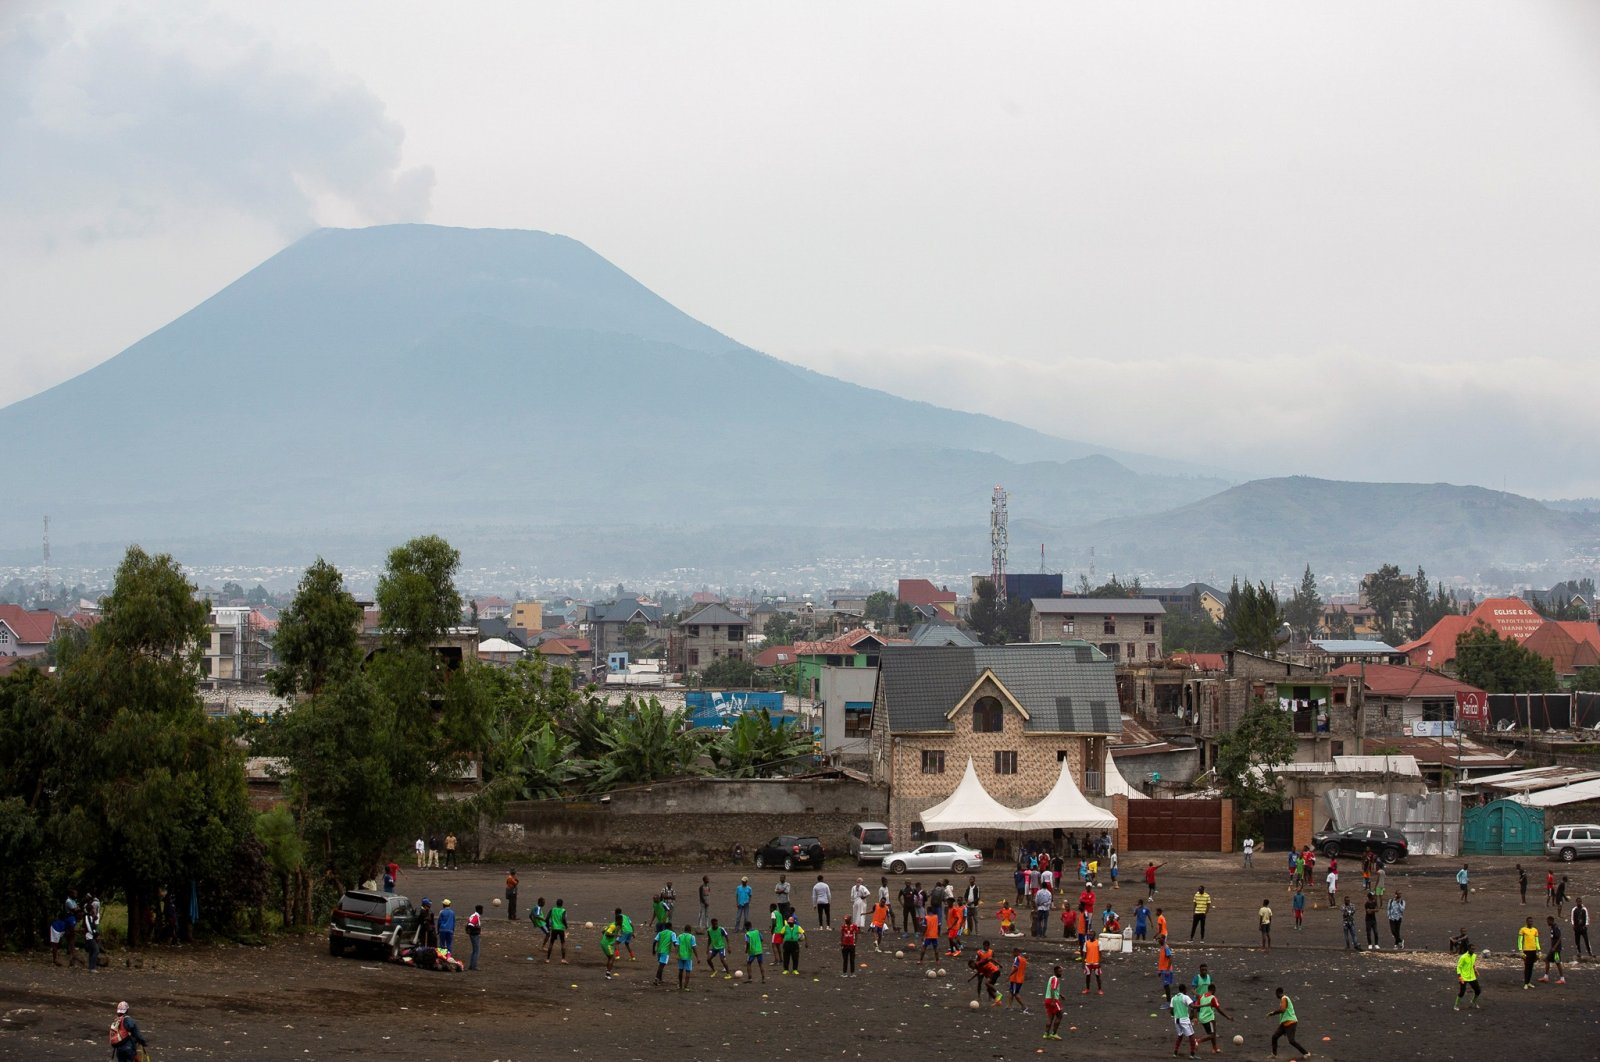 Congolese men play football with Mount Nyiragongo puffing away in the background, in Goma, eastern Democratic Republic of Congo, Feb. 18, 2021. (Reuters Photo)